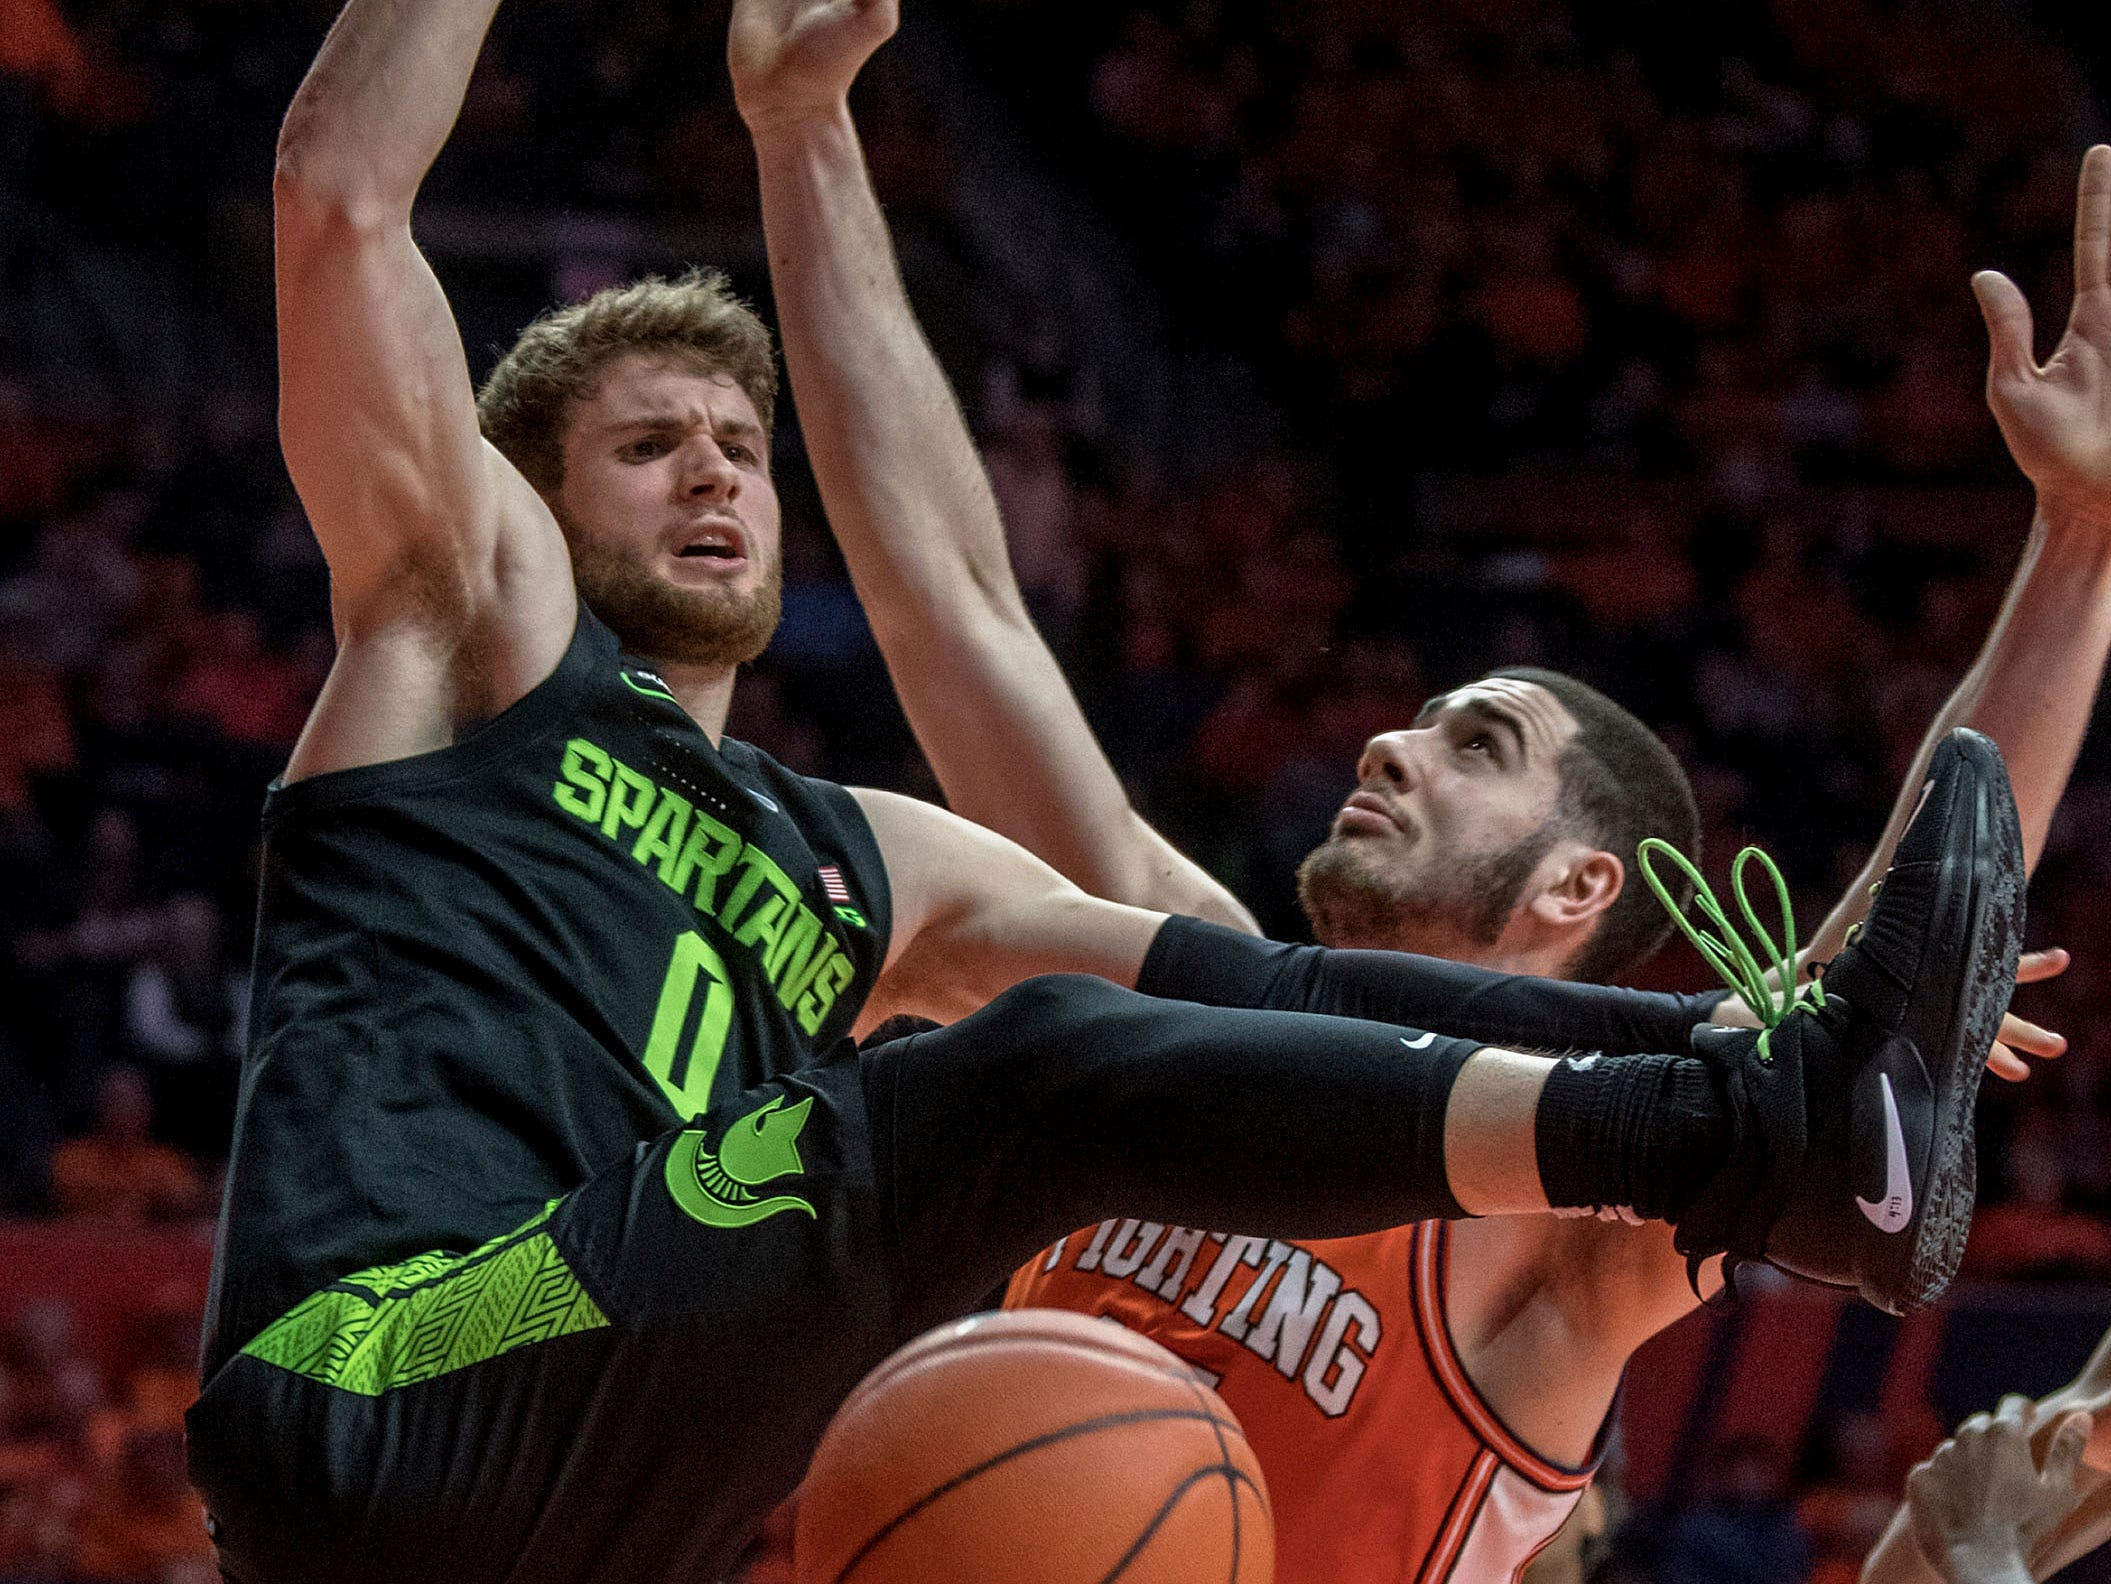 Michigan State forward Kyle Ahrens collides with Illinois forward Giorgi Bezhanishvili after trying to shoot during the second half of MSU's 79-74 loss to Illinois on Tuesday, Feb. 5, 2019, in Champaign, Ill.